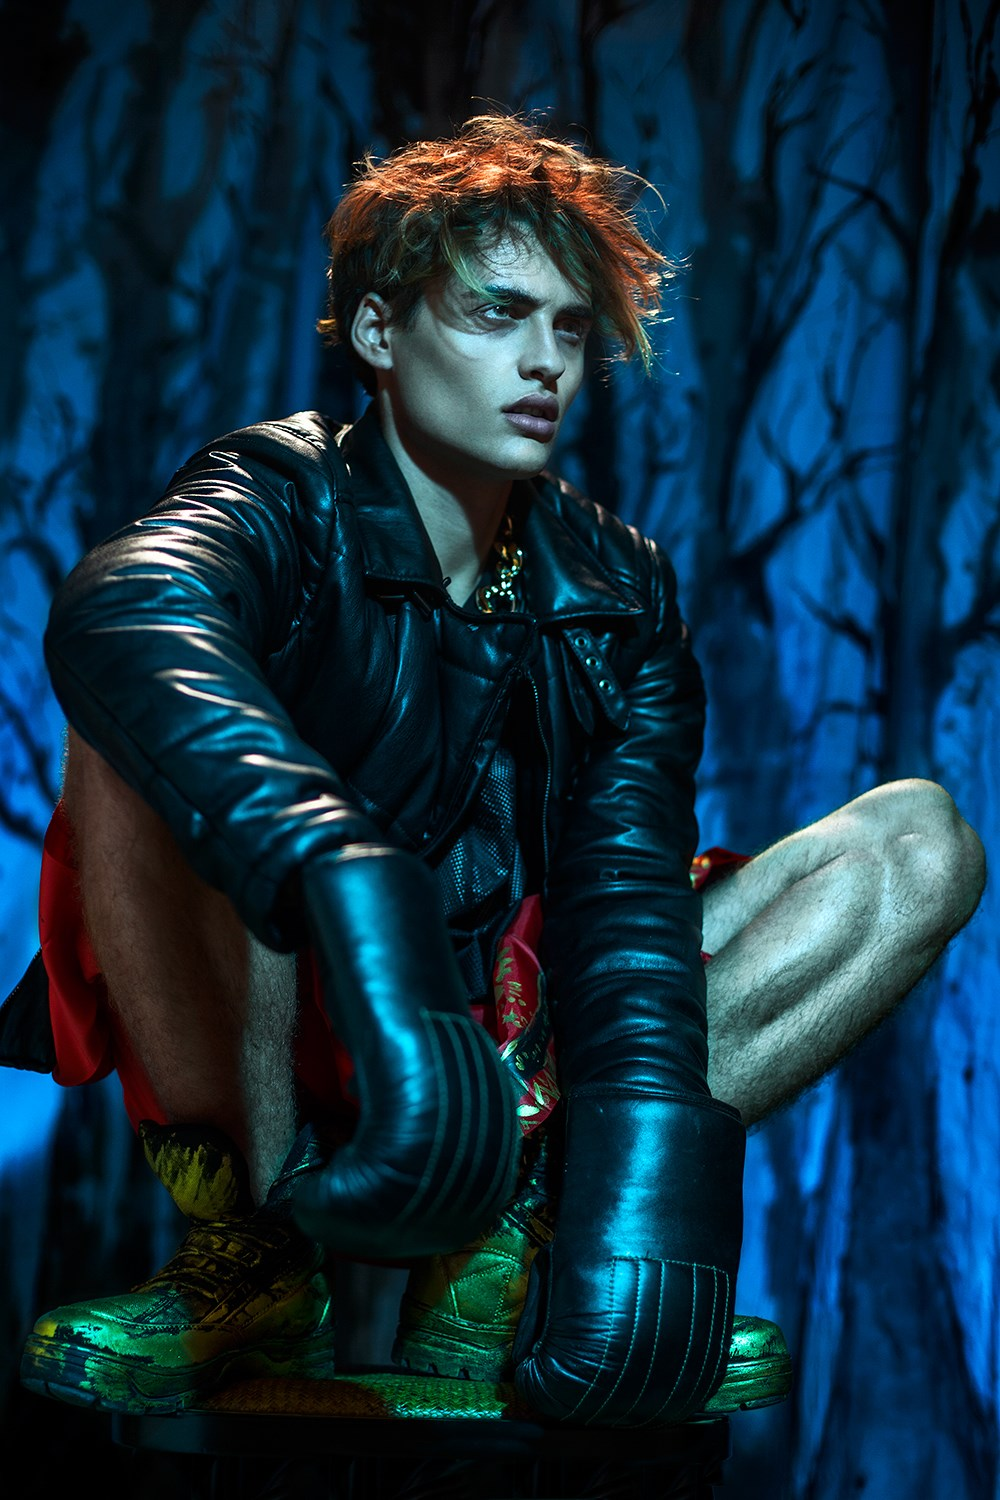 Charlye Madison Wproject: Ben Hill by Alexi Lubomirski